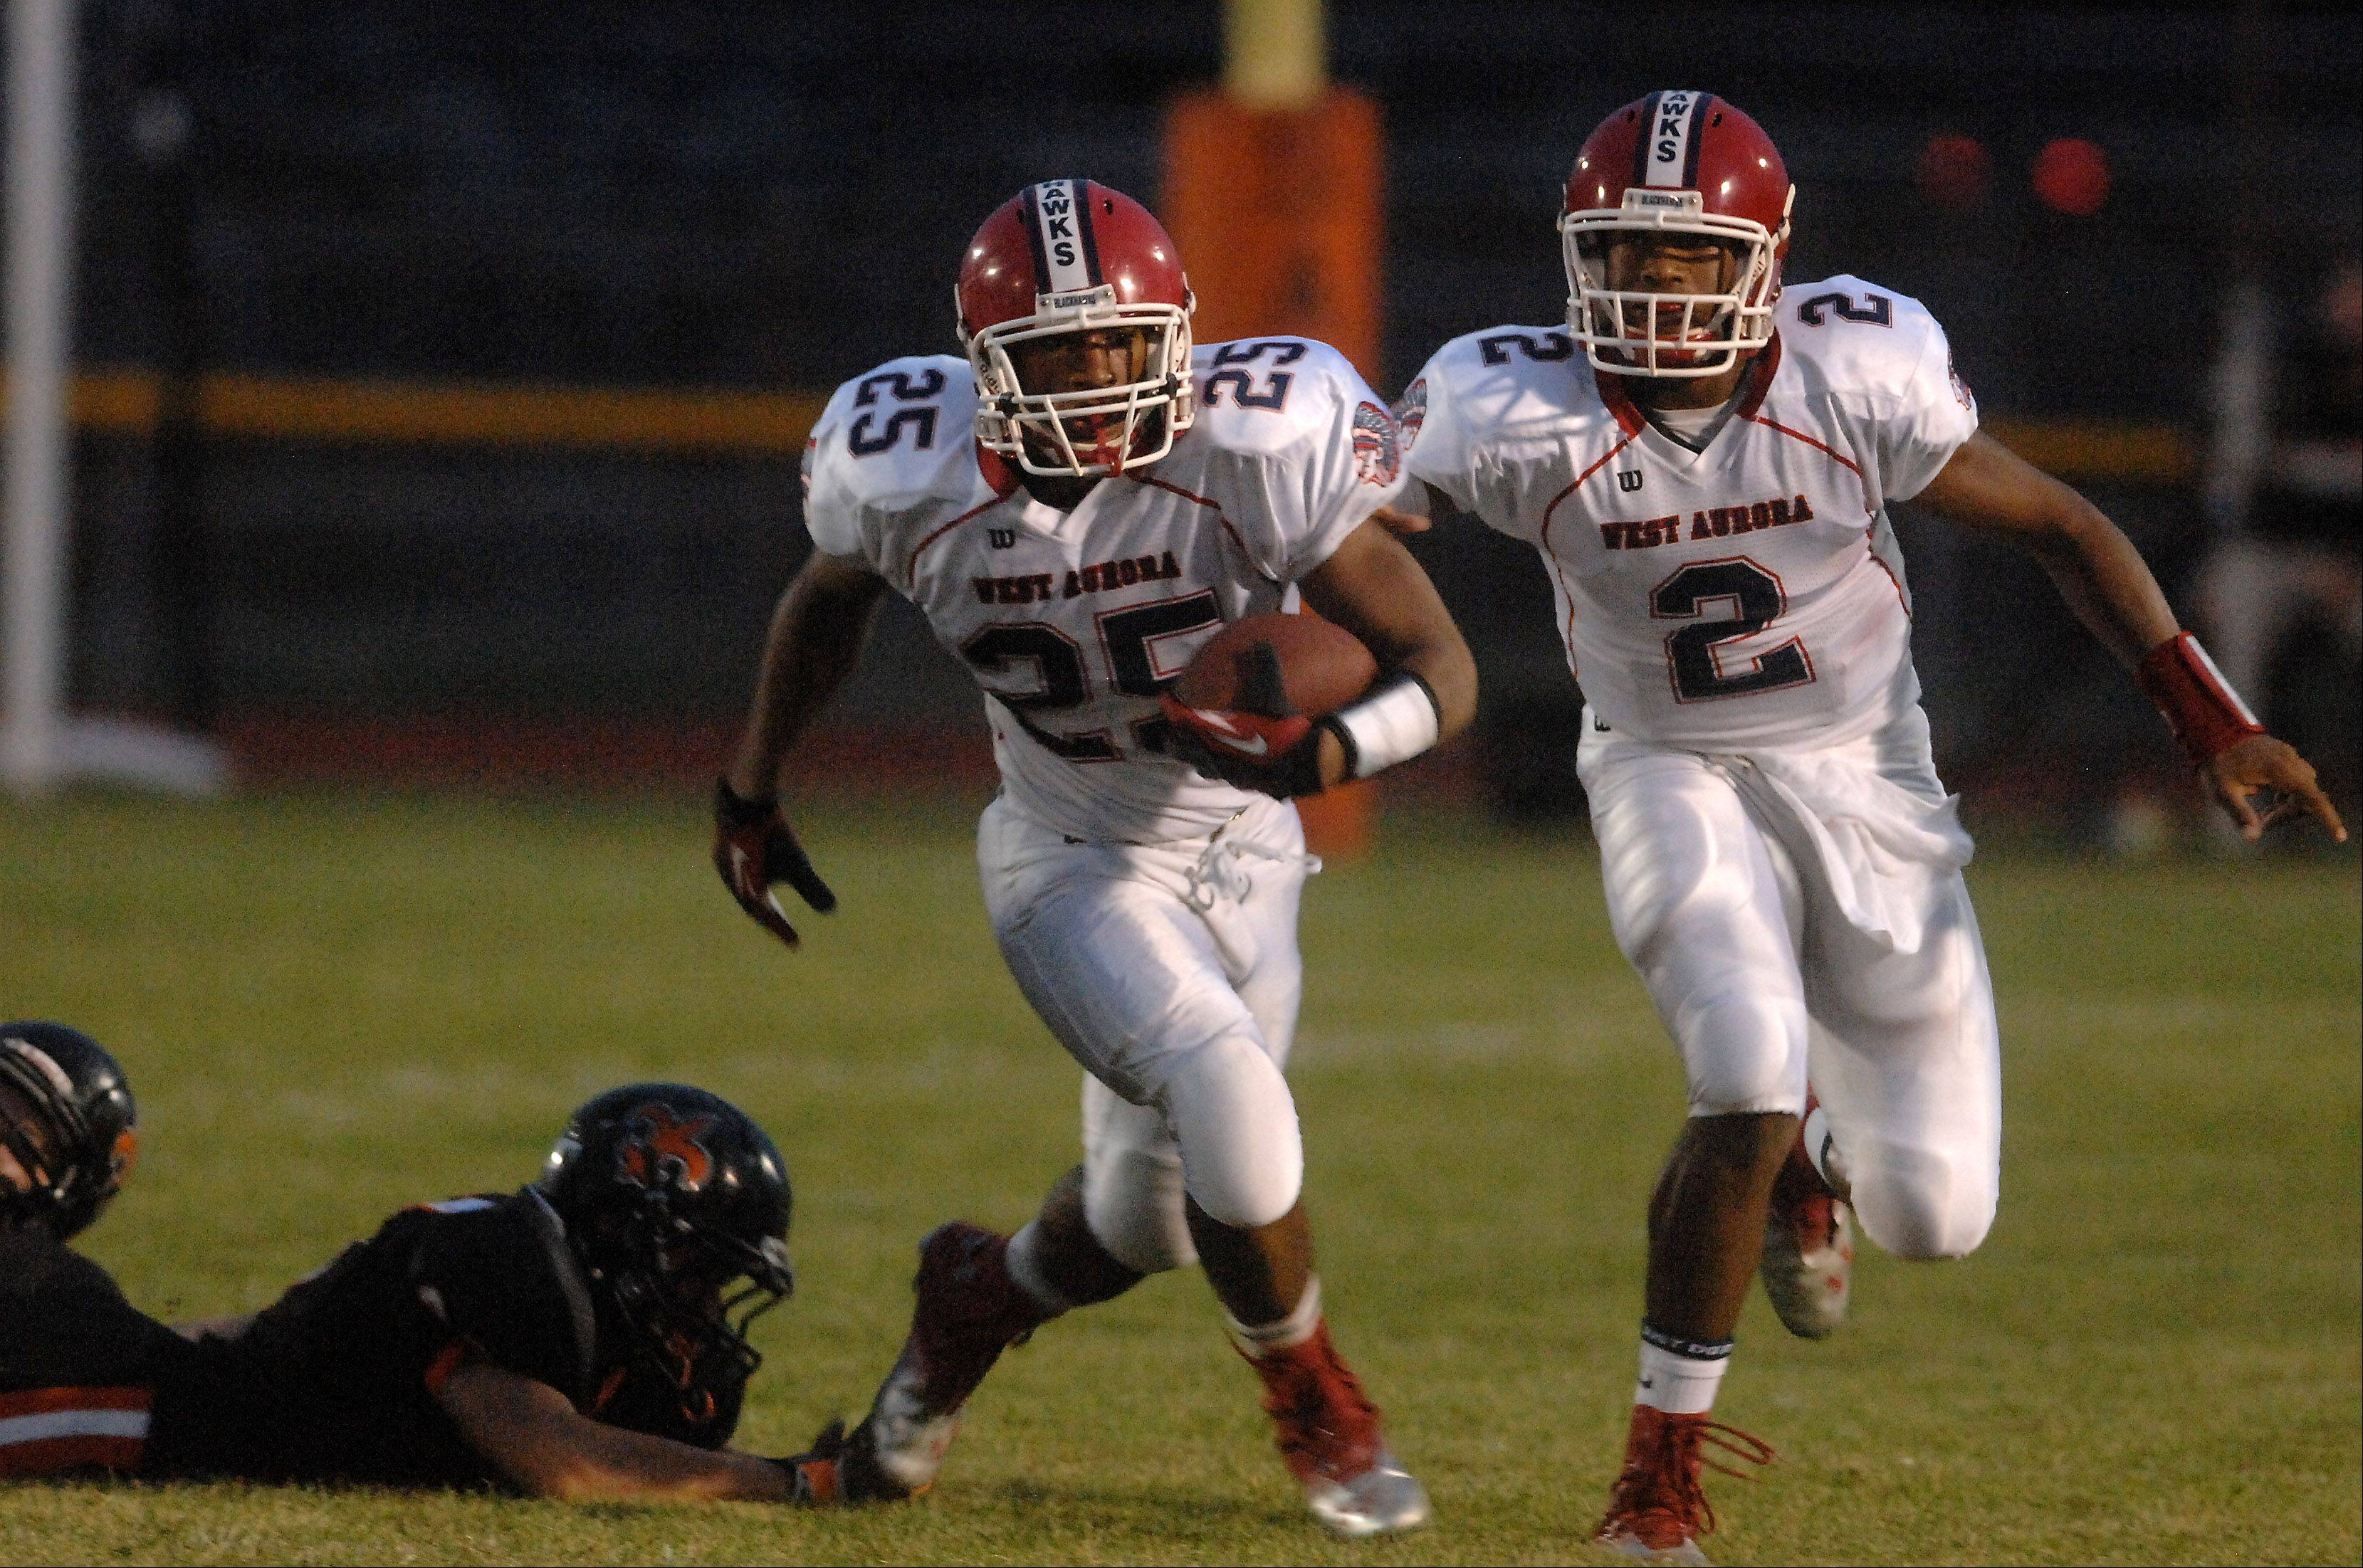 West Aurora's Booker Ross breaks a run to the outside.